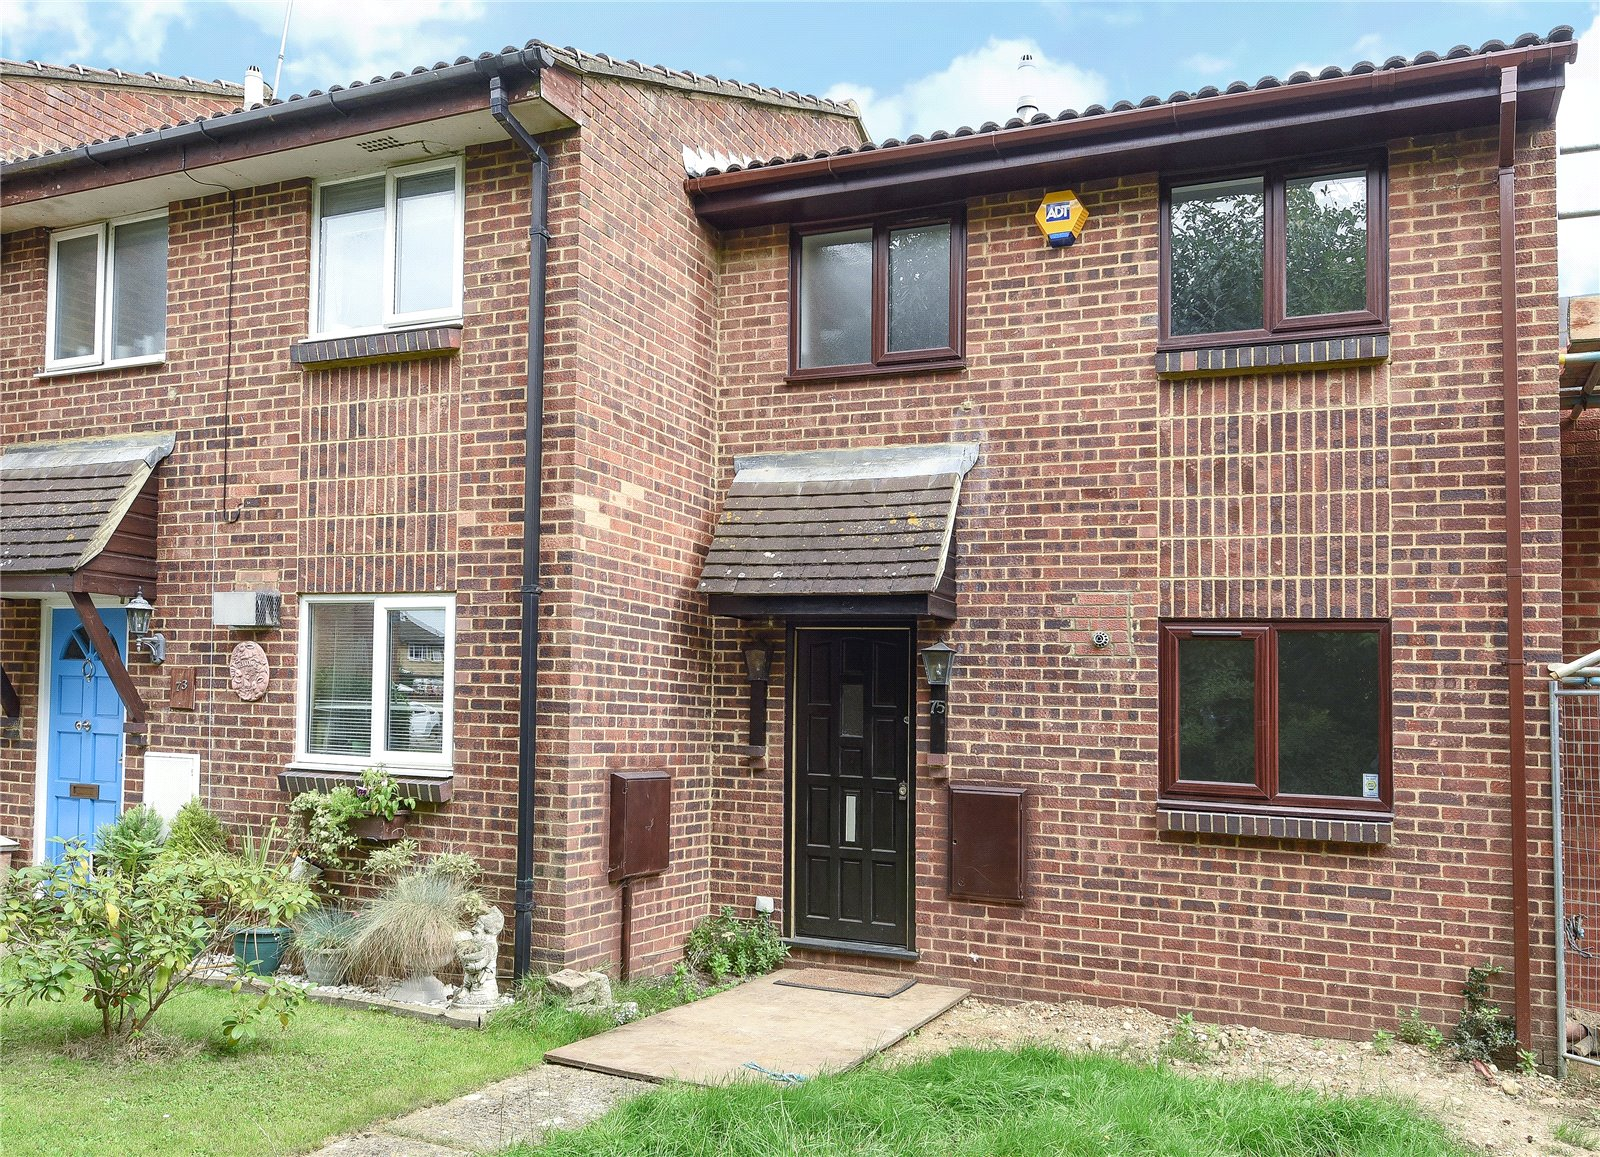 3 Bedrooms Terraced House for sale in Avocet Crescent, College Town, Sandhurst, Berkshire, GU47